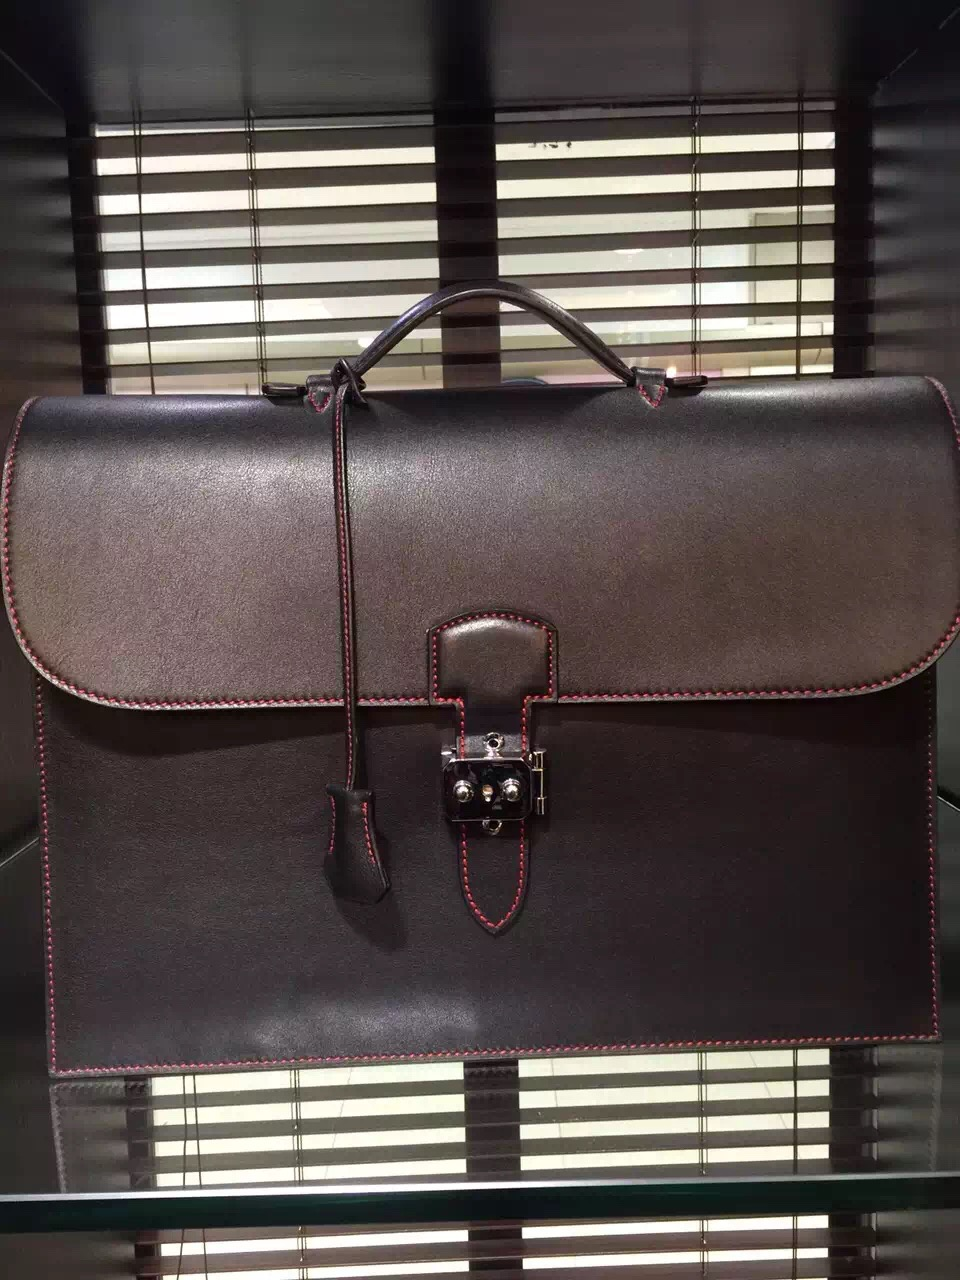 Hermes Sac a Depeche 41 Briefcase Dark Red Swift Leather Handstitched